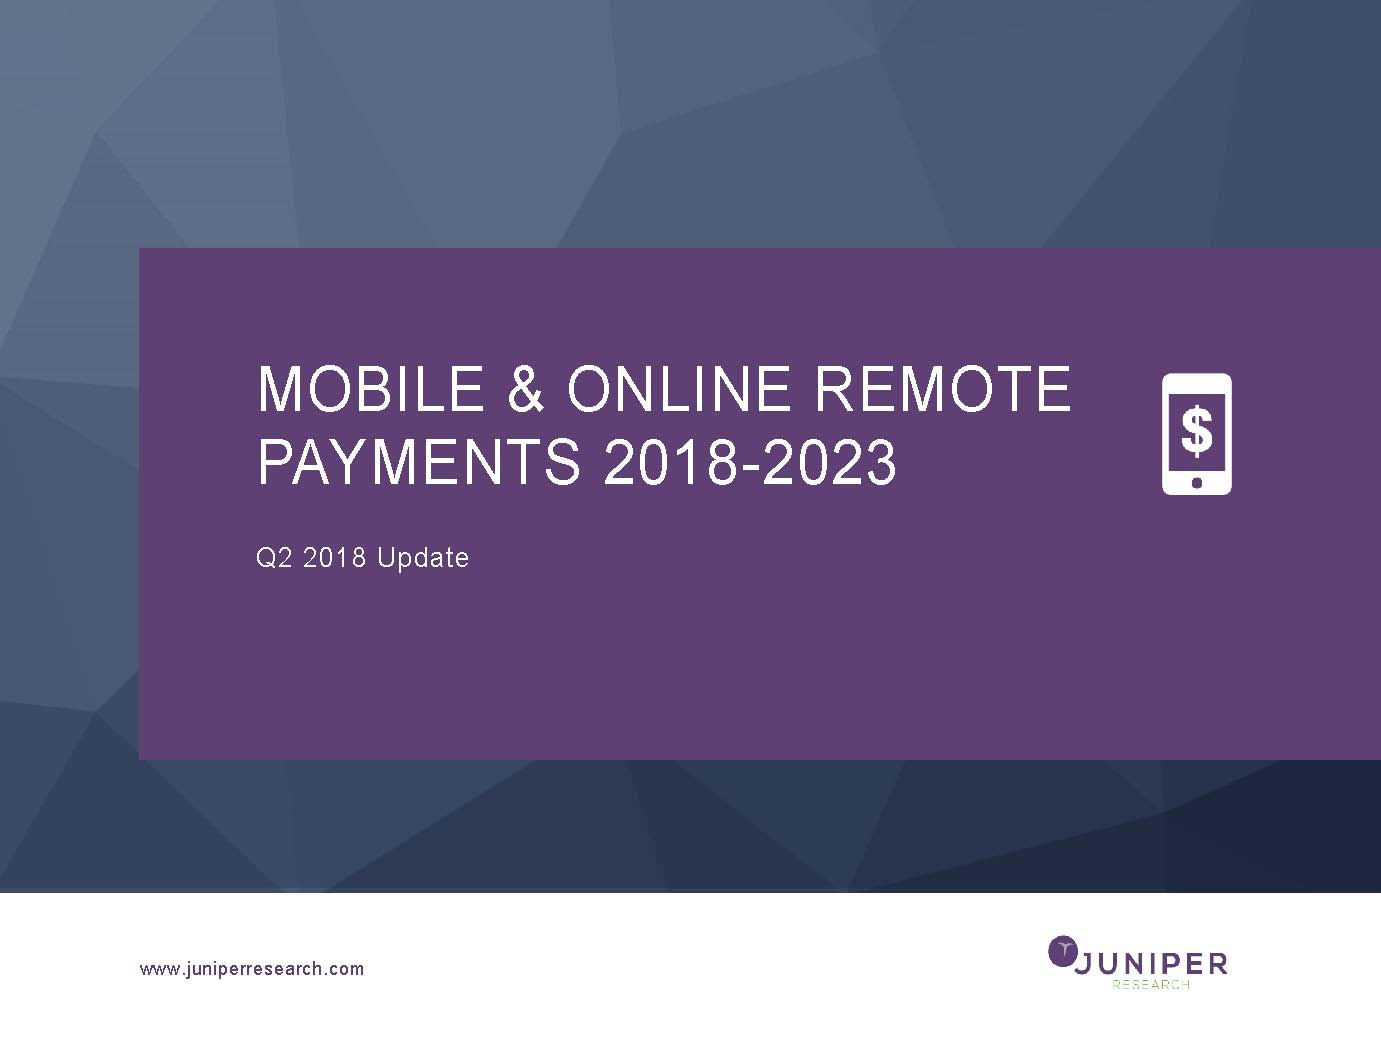 Mobile & Online Remote Payments - Q2 2018